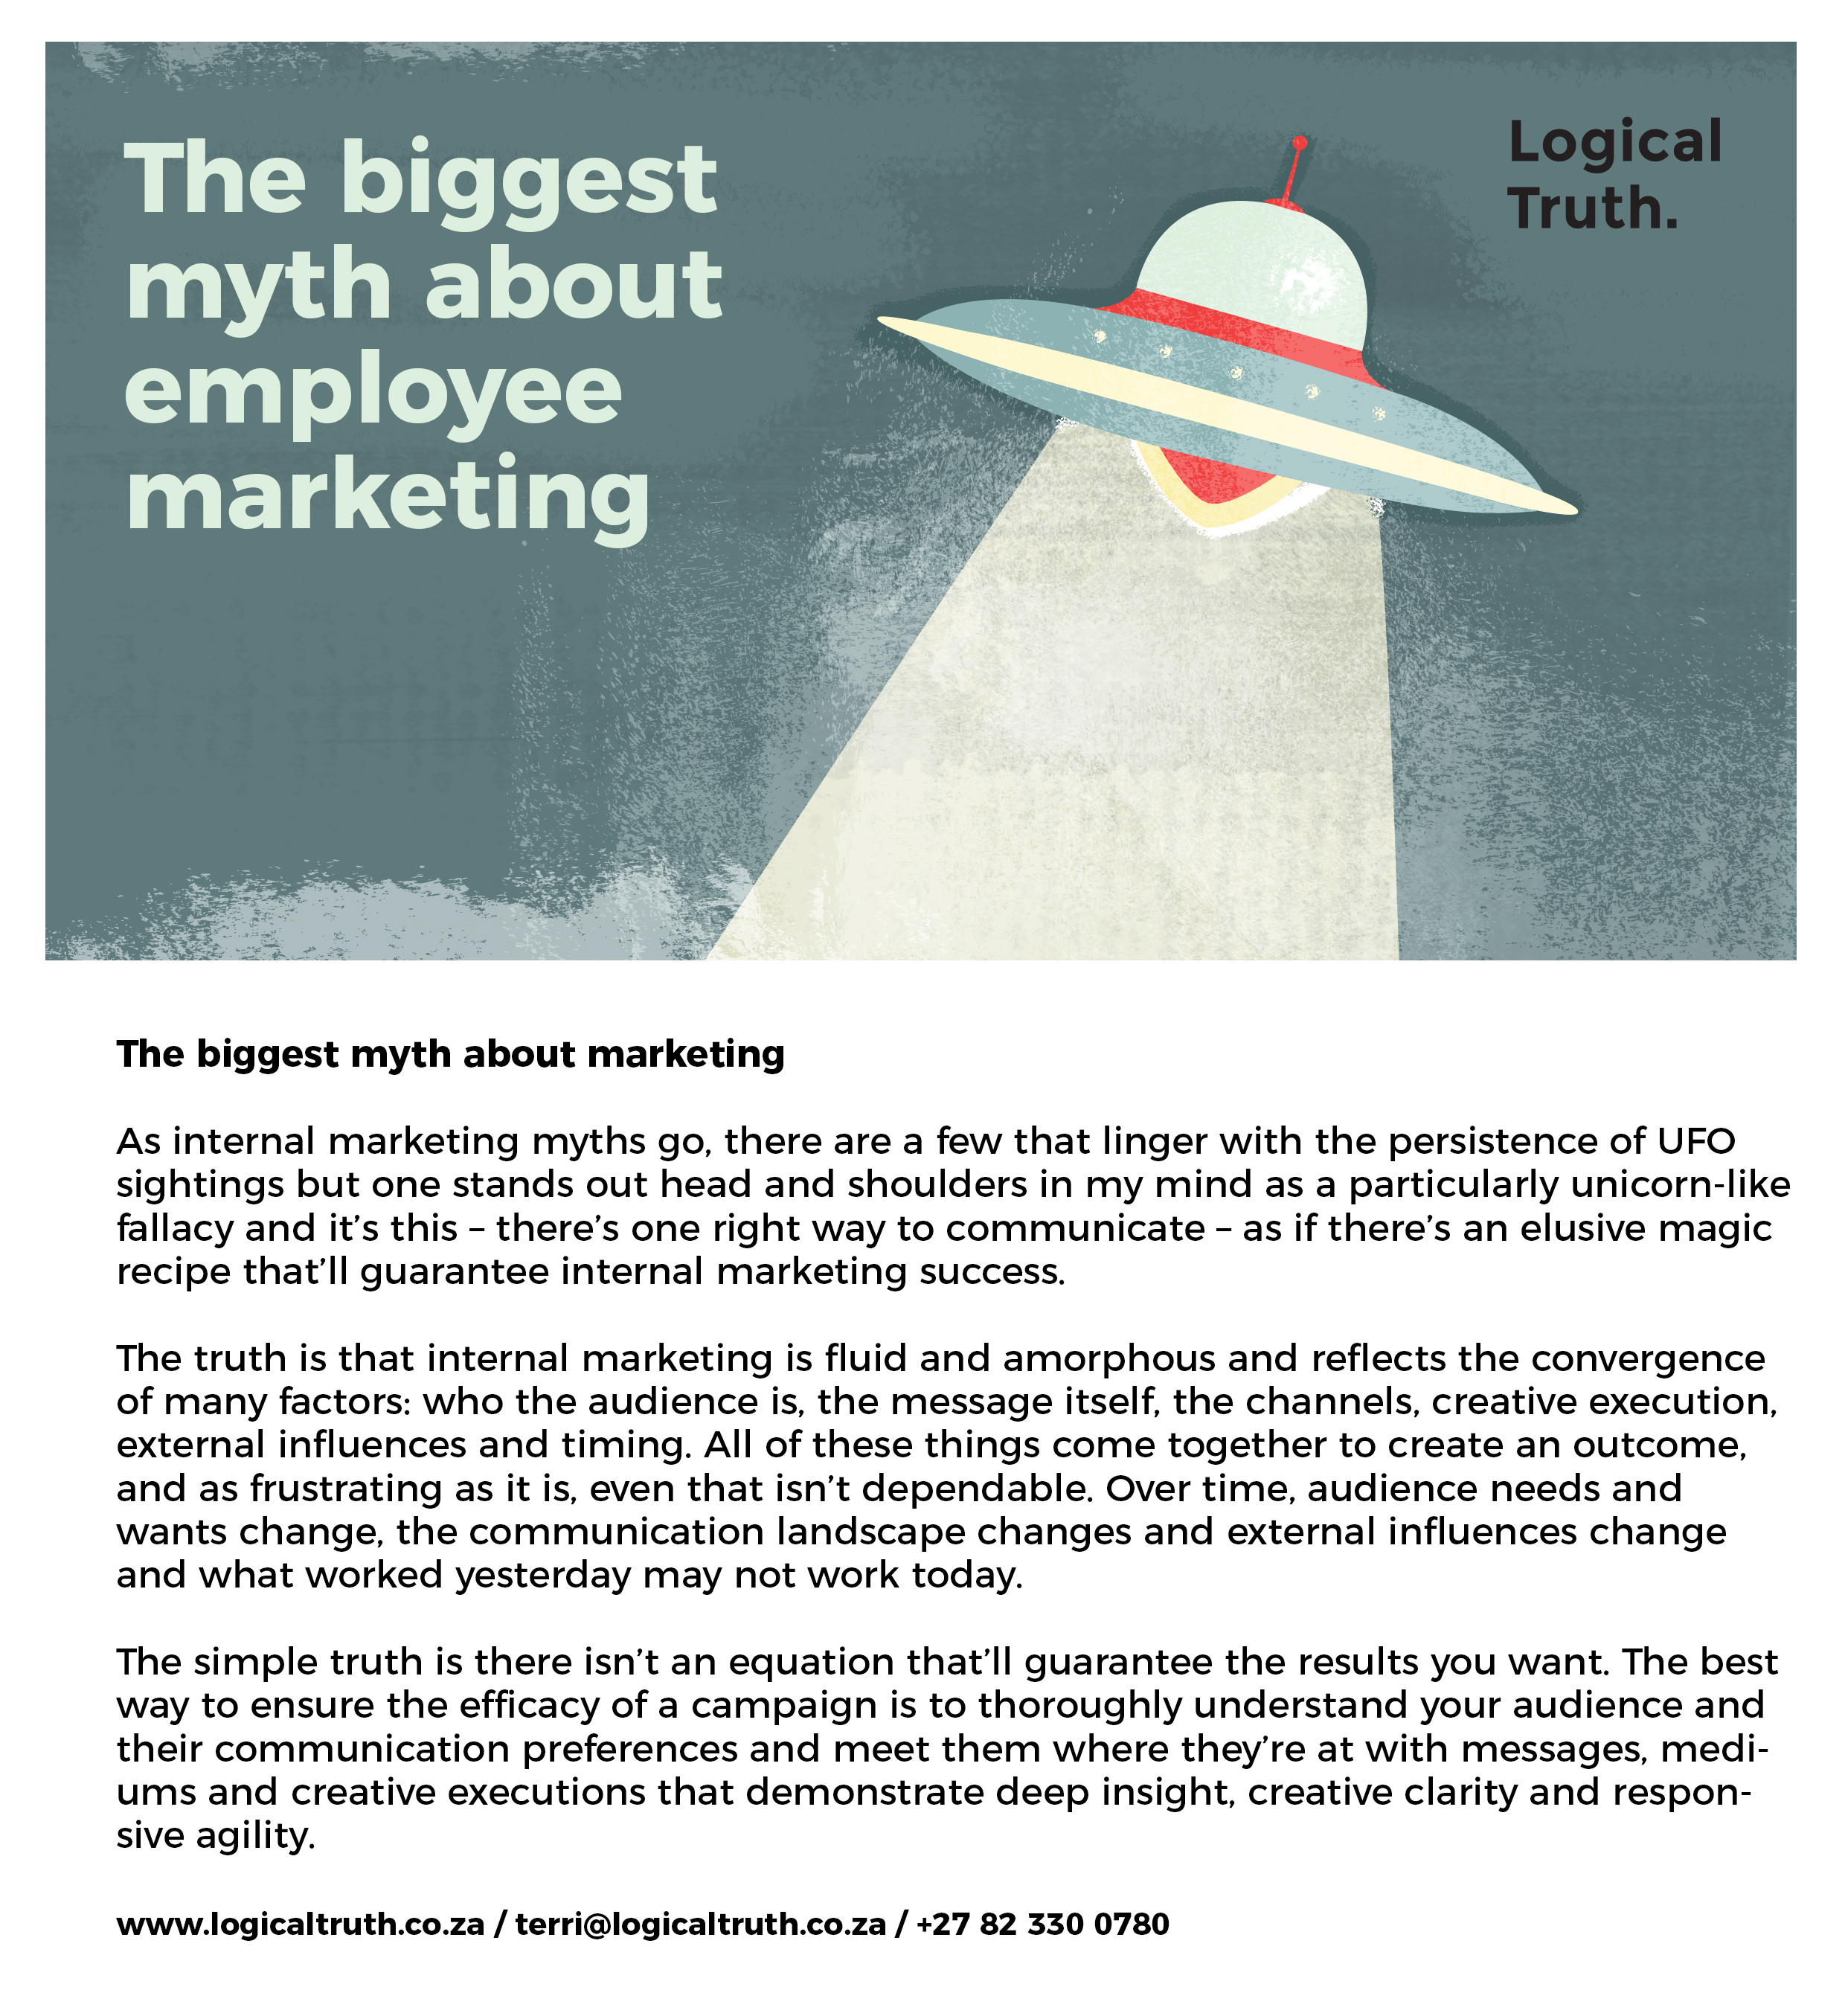 Postcard 4 v02 ufo - Logical Truth - The biggest myth about employee marketing